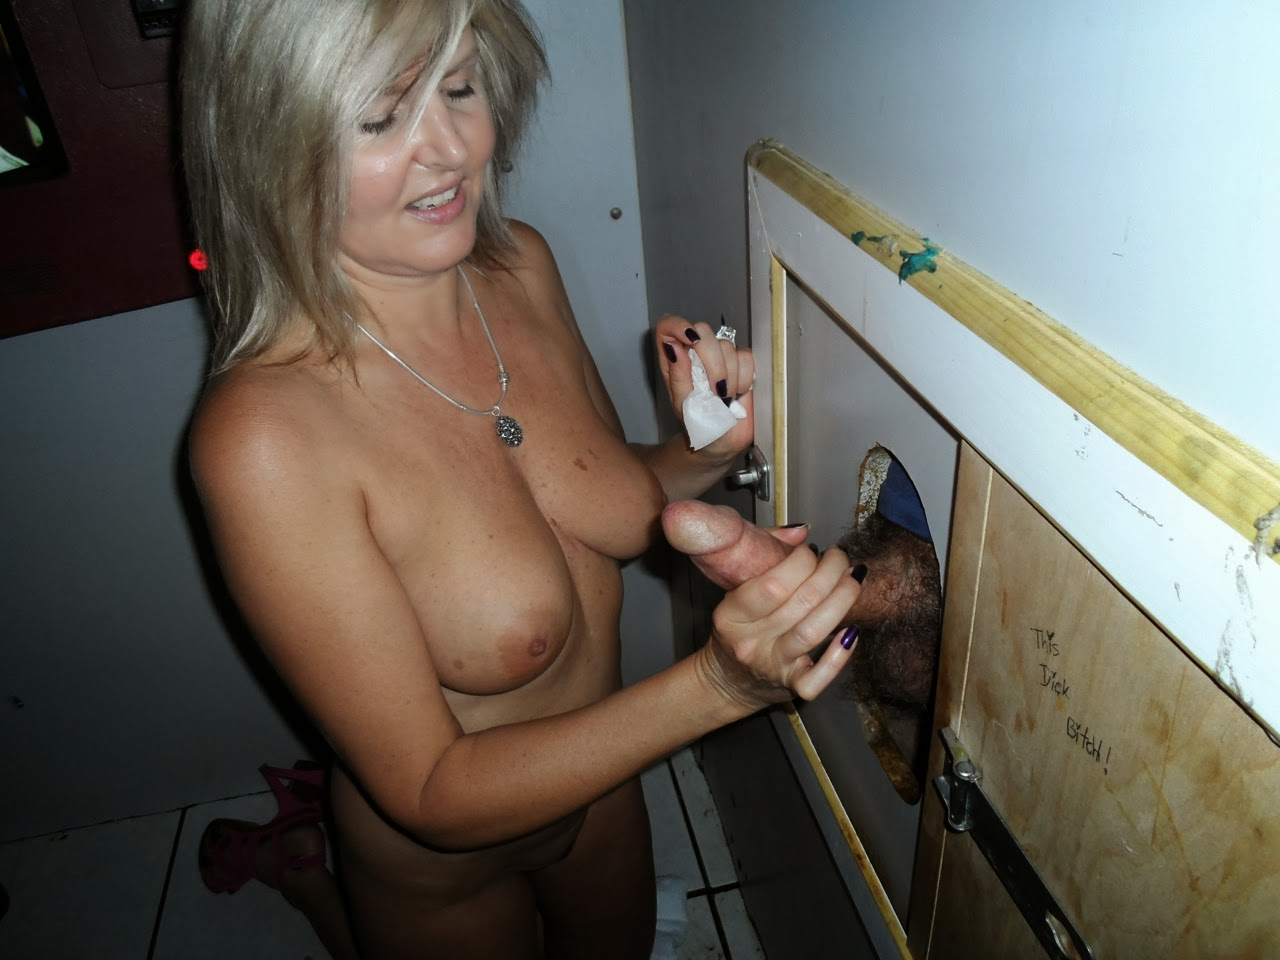 Mature Glory Hole Tumblr - Datawav-4089